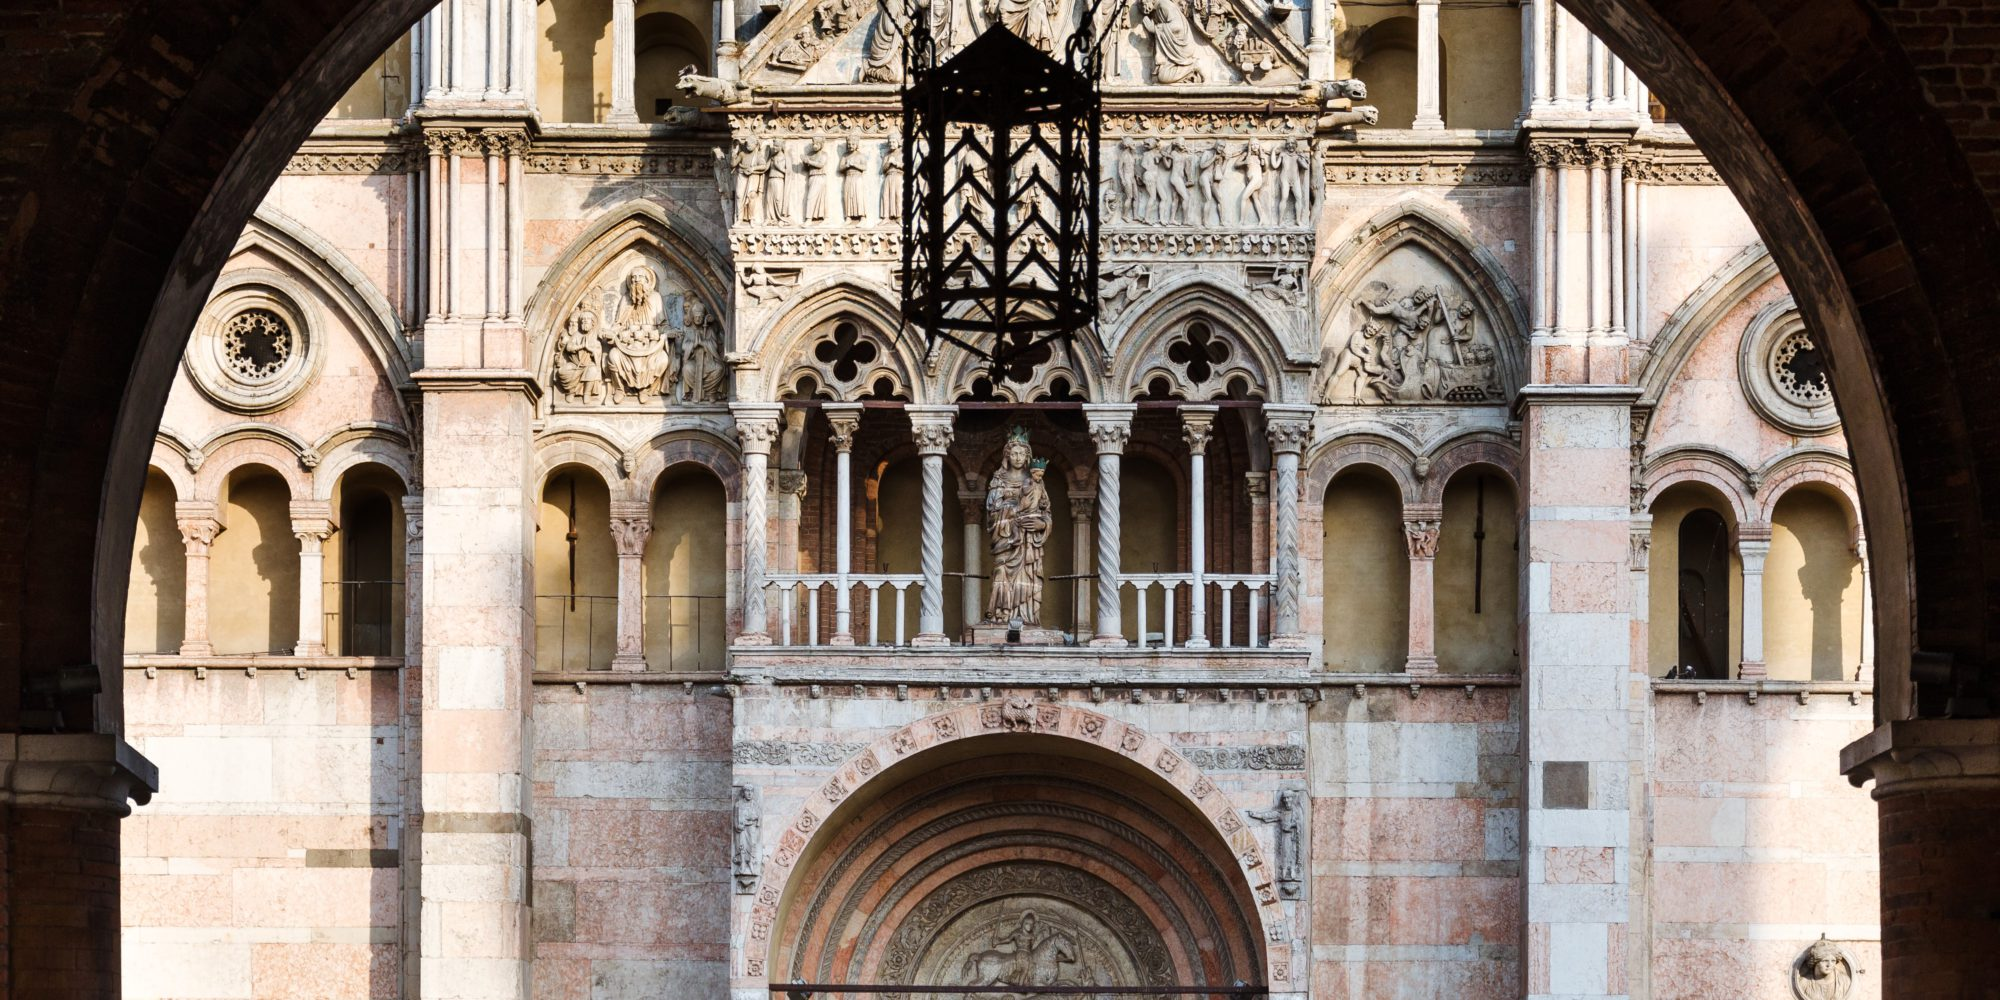 Ferrara is situated in the heart of the Padana planes. The city has been awarded UNESCO status because of the perfectly intact historic center. Here visitors can experience the atmosphere of the Renaissance past.